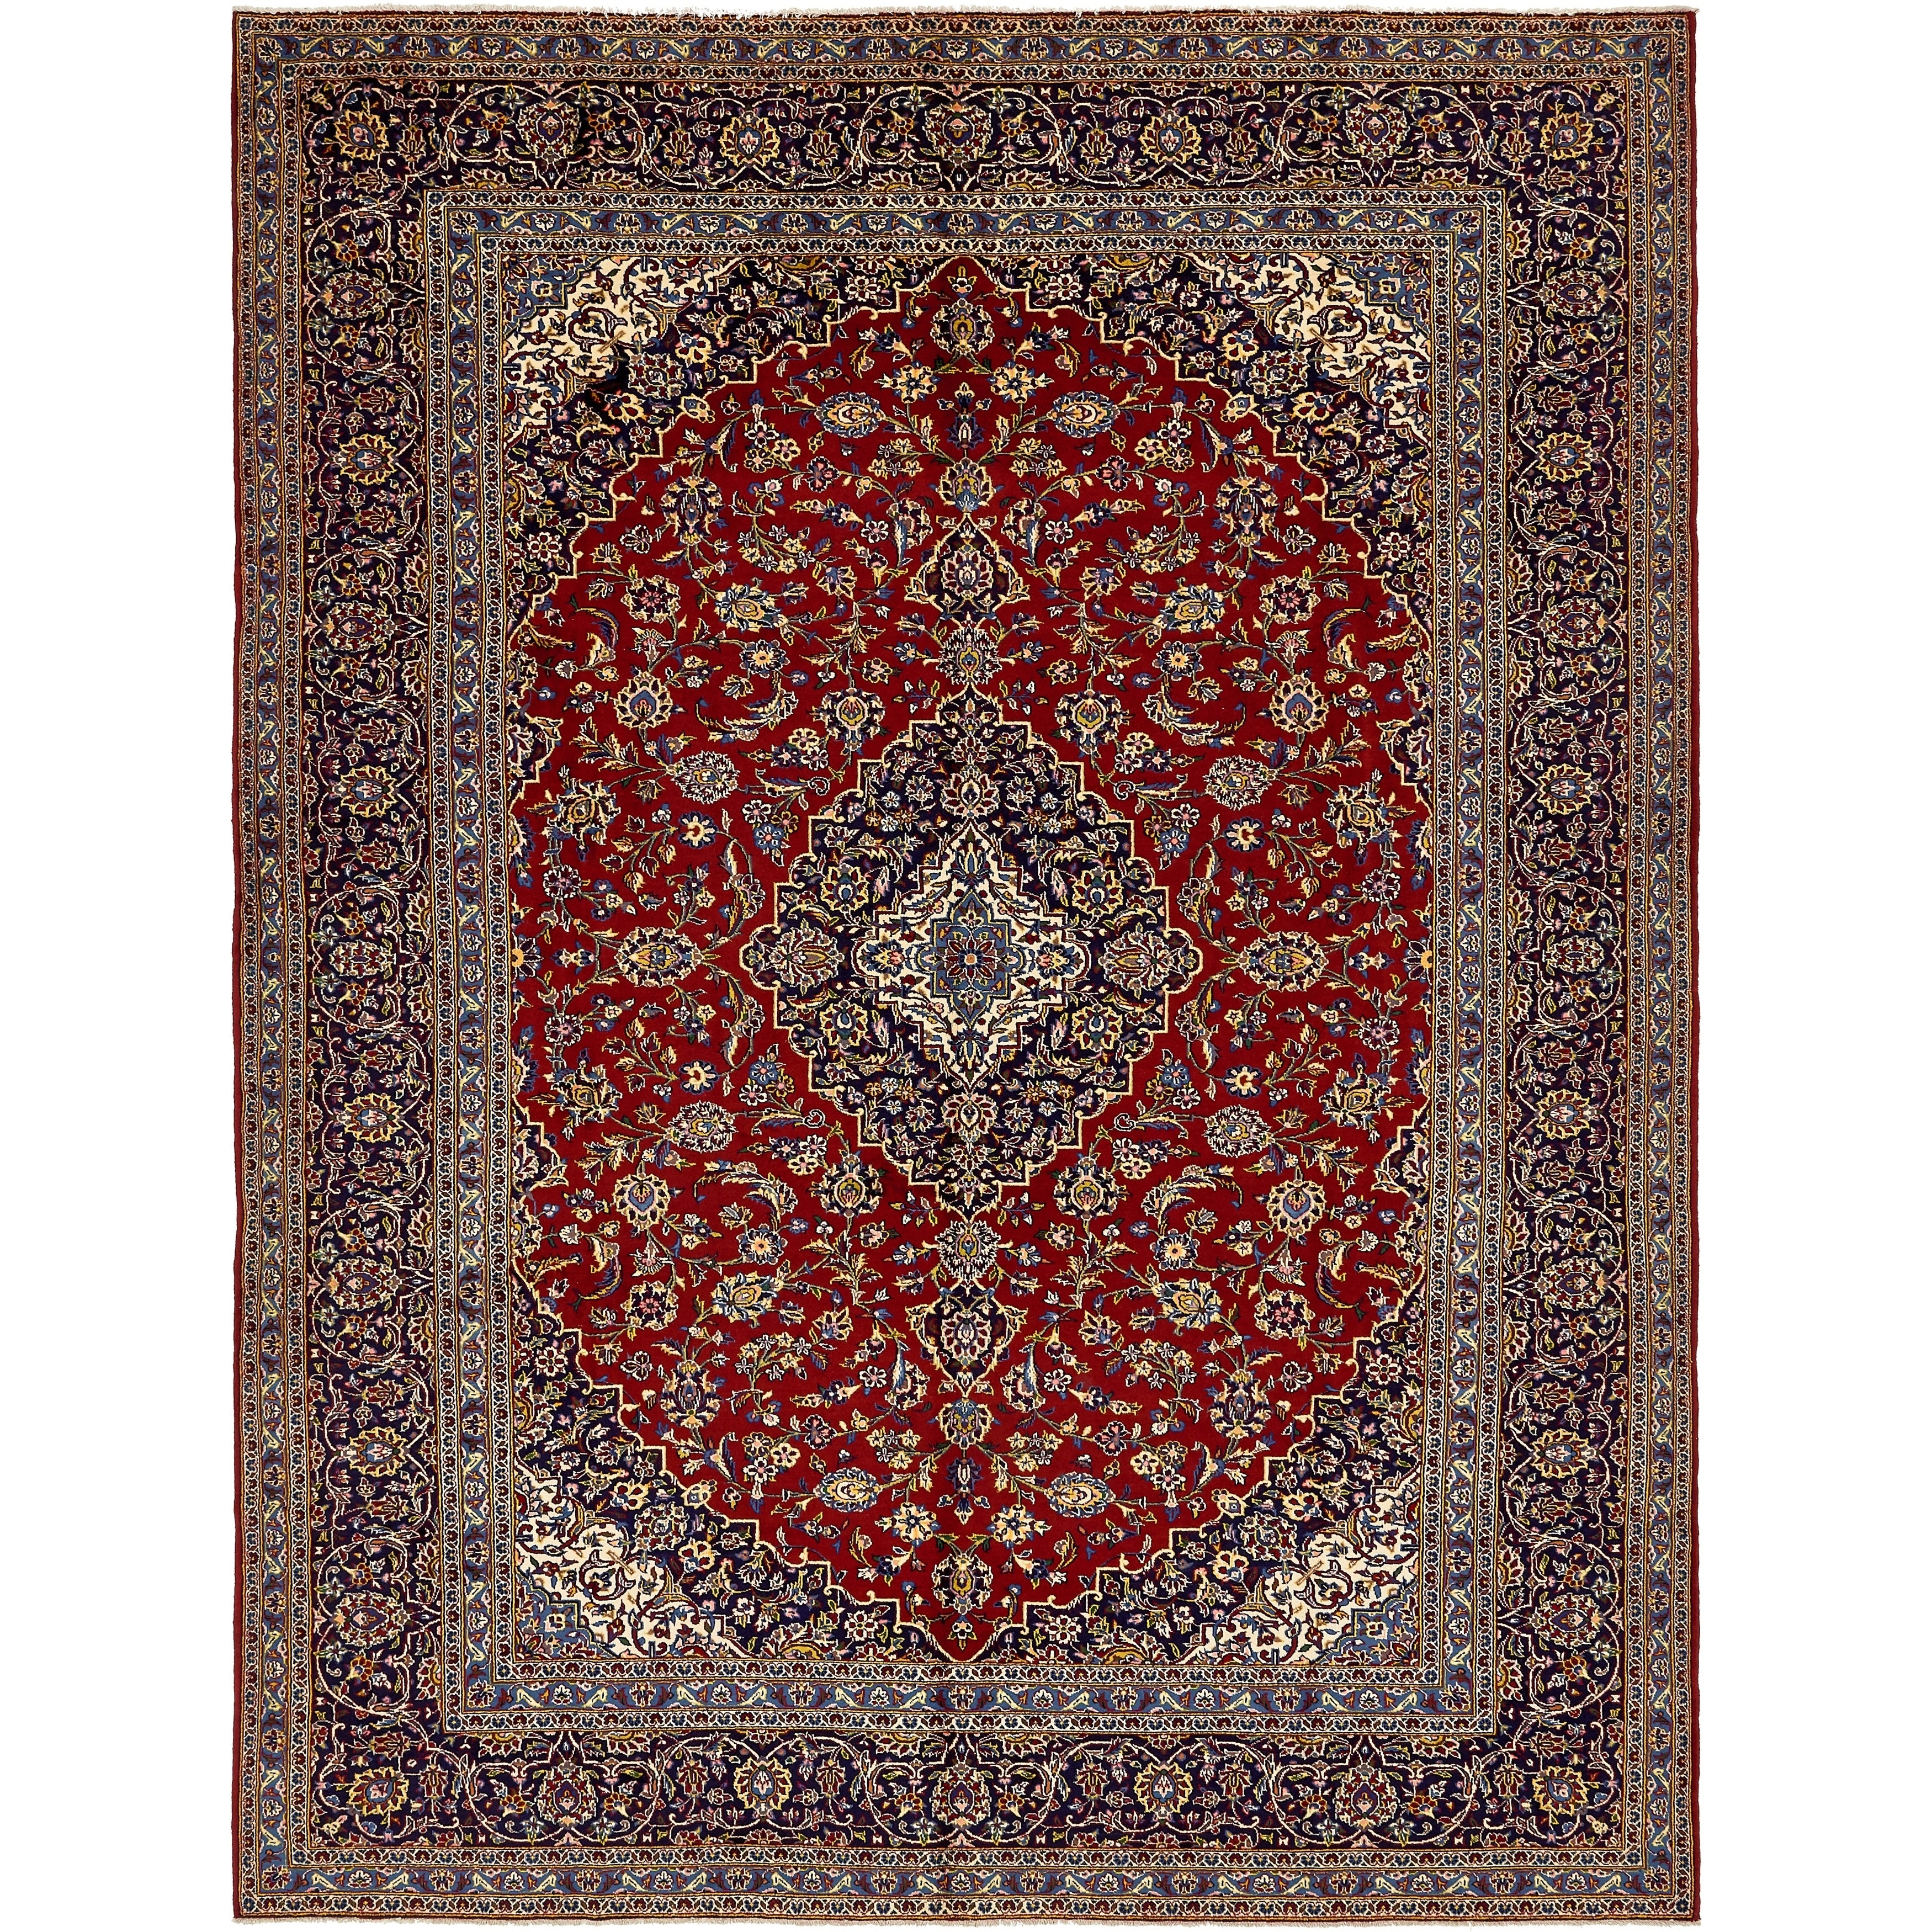 Hand Knotted Kashan Semi Antique Wool Area Rug - 10 x 12 10 (Red - 10 x 12 10)